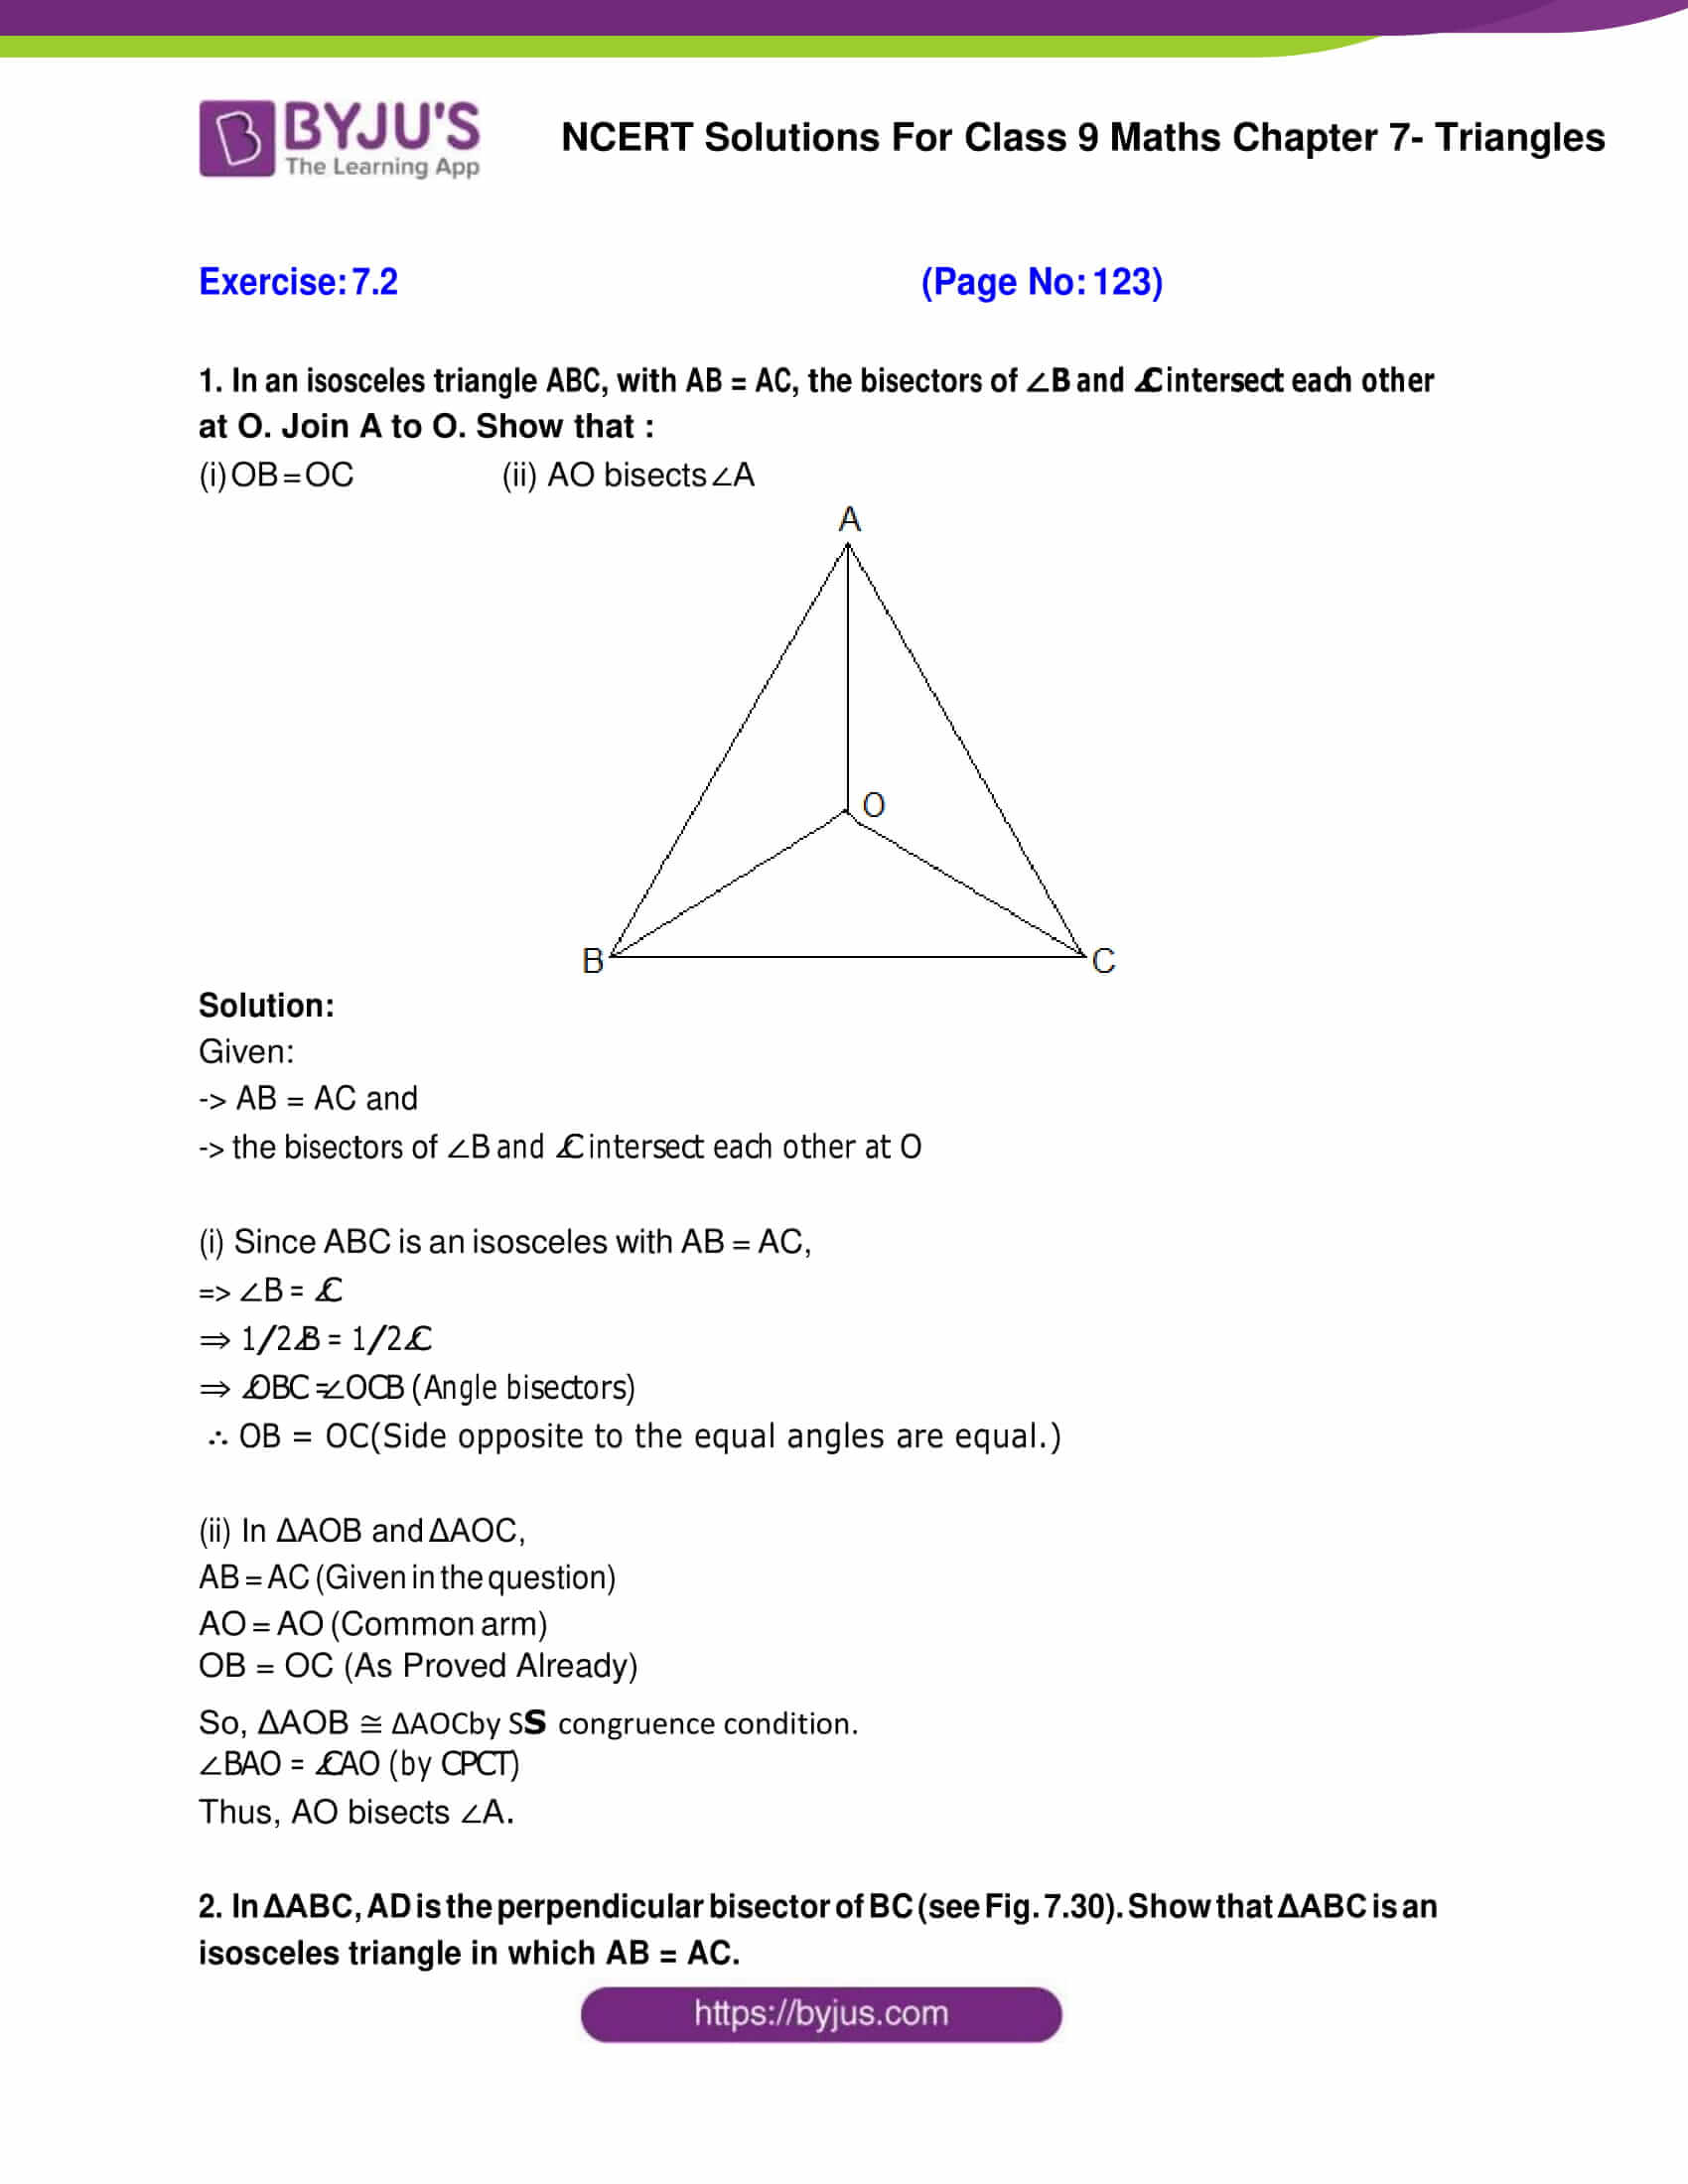 NCERT Solutions for Class 9 Maths Exercise 7 2 Chapter 7